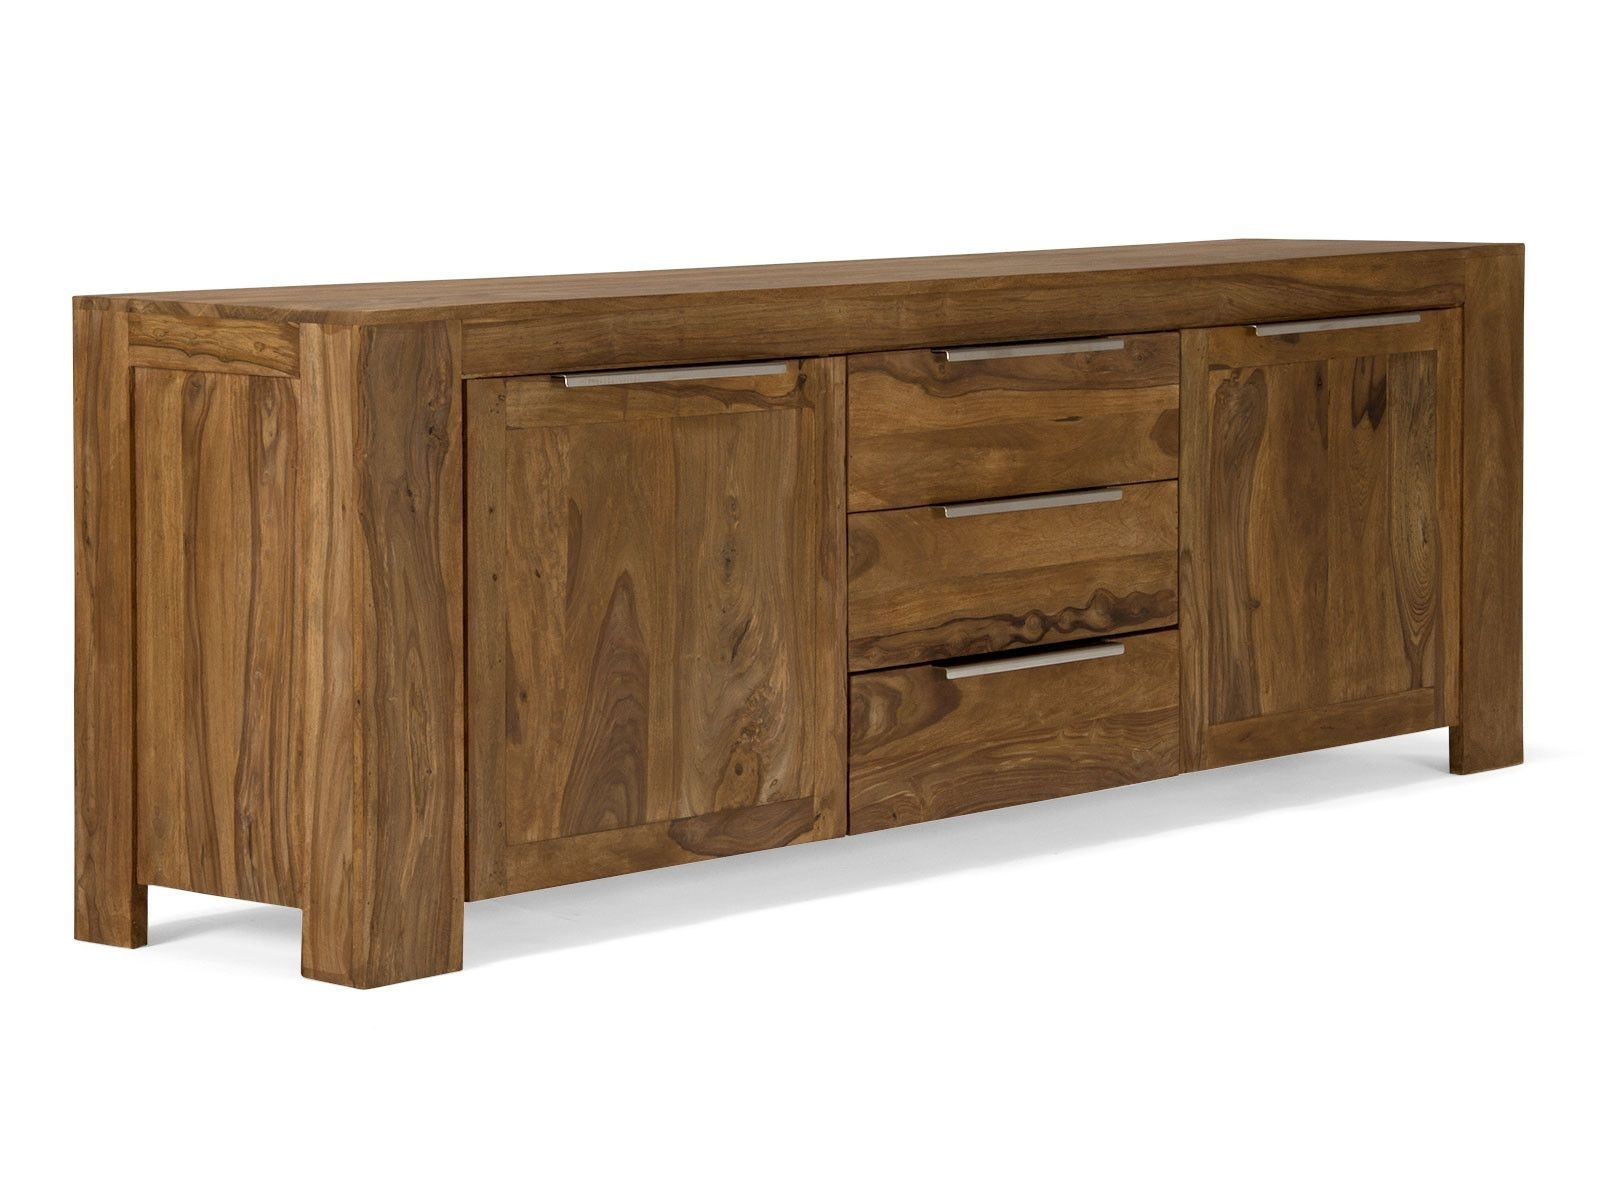 Sideboard Stark I | Ip Teak Furniture Mauritius | Pinterest | Teak Intended For Best And Newest Light Brown Reclaimed Elm & Pine 84 Inch Sideboards (View 3 of 20)